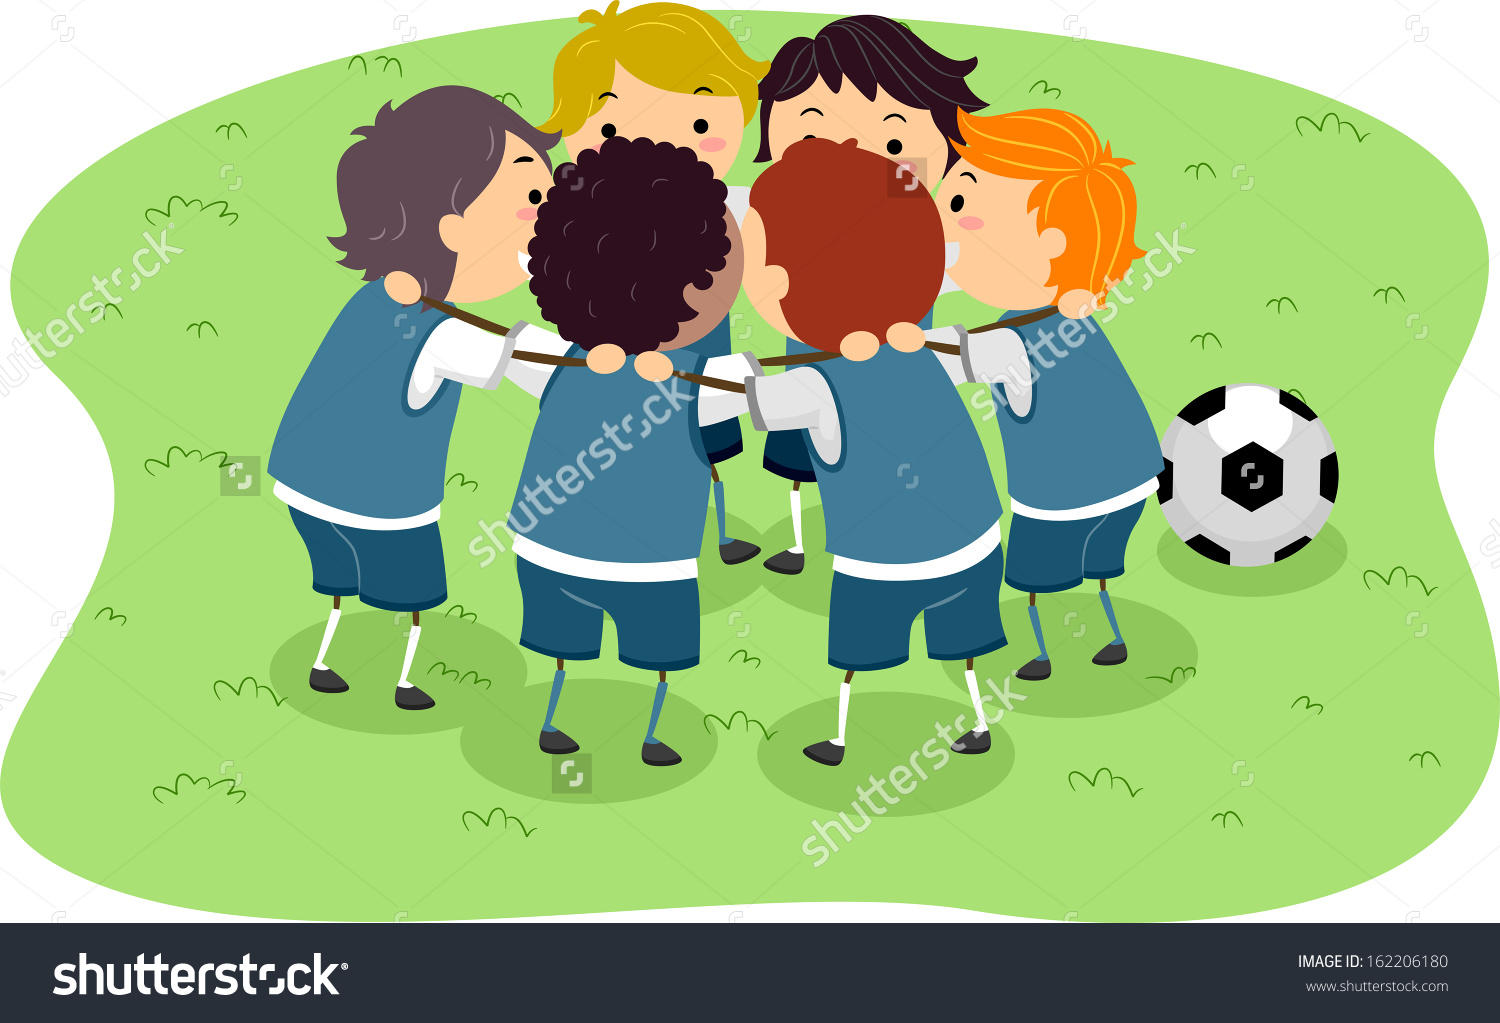 Game clipart soccer game #10